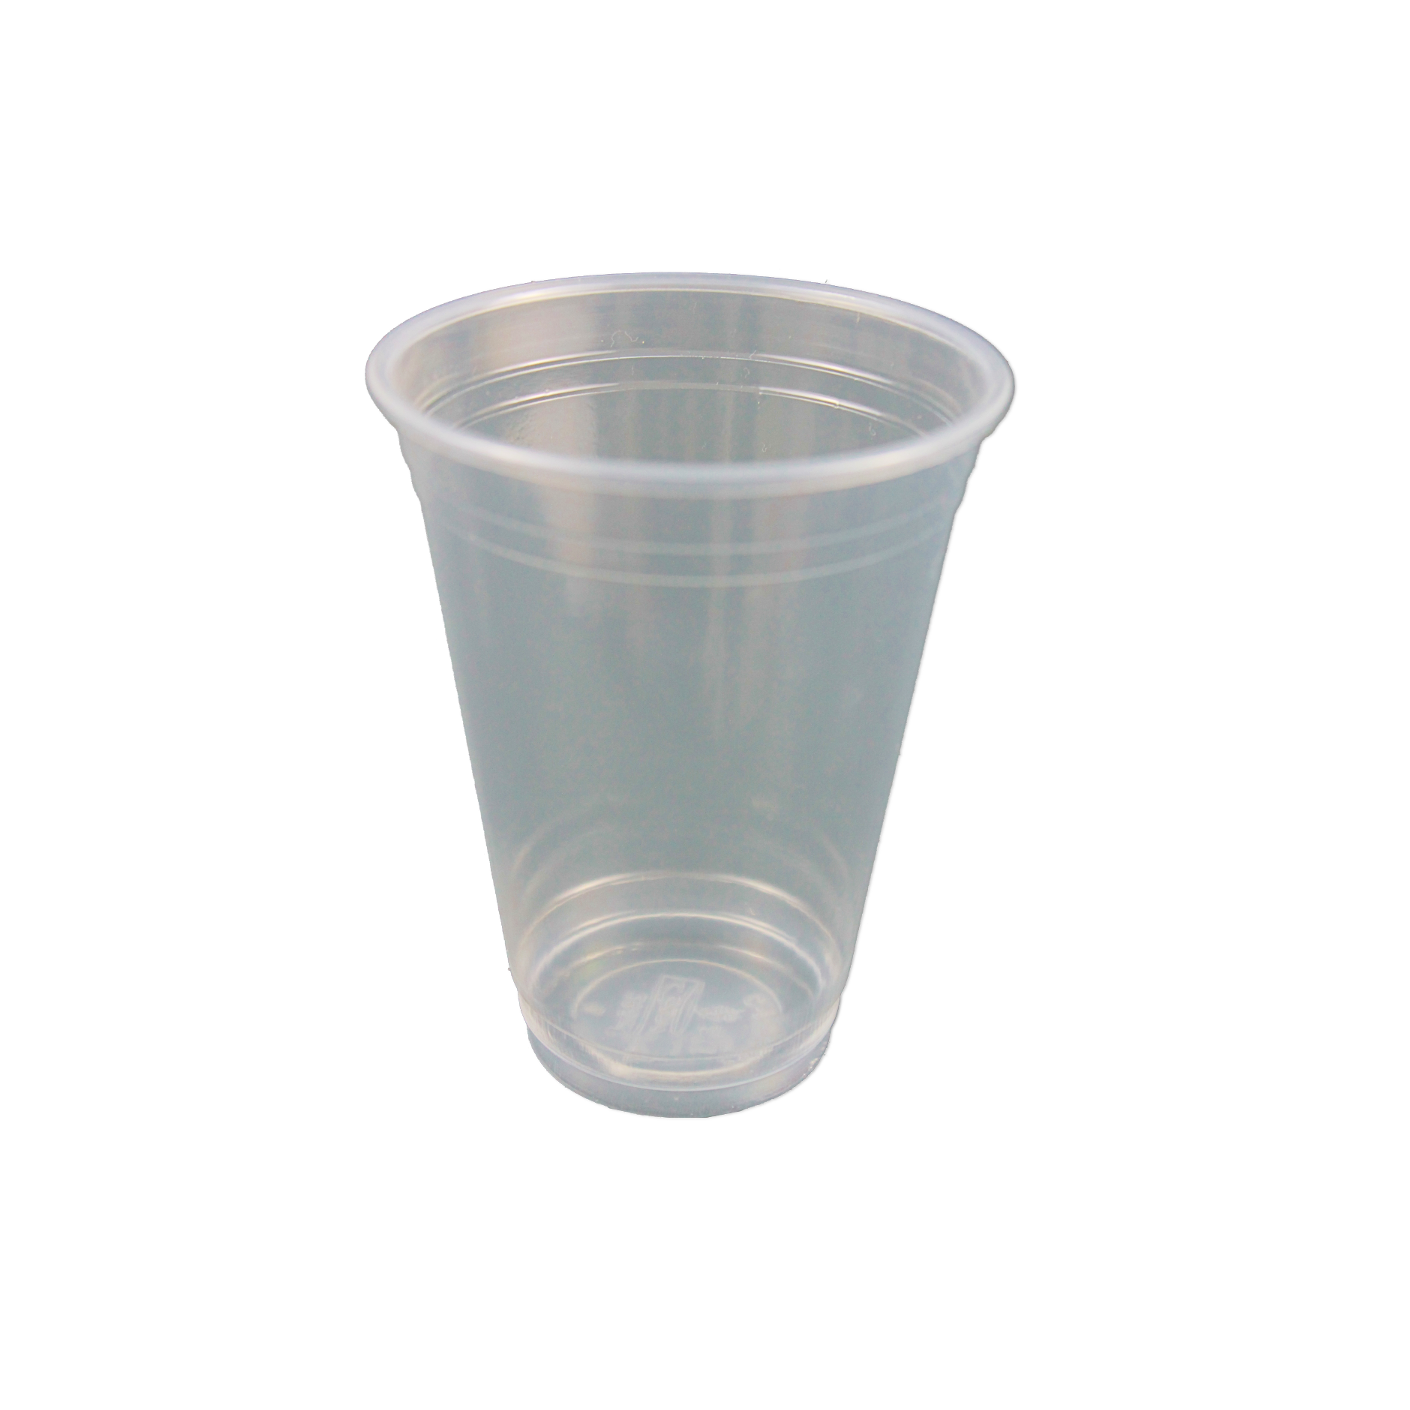 Capri Clear Plastic Cup 7oz or 200ml